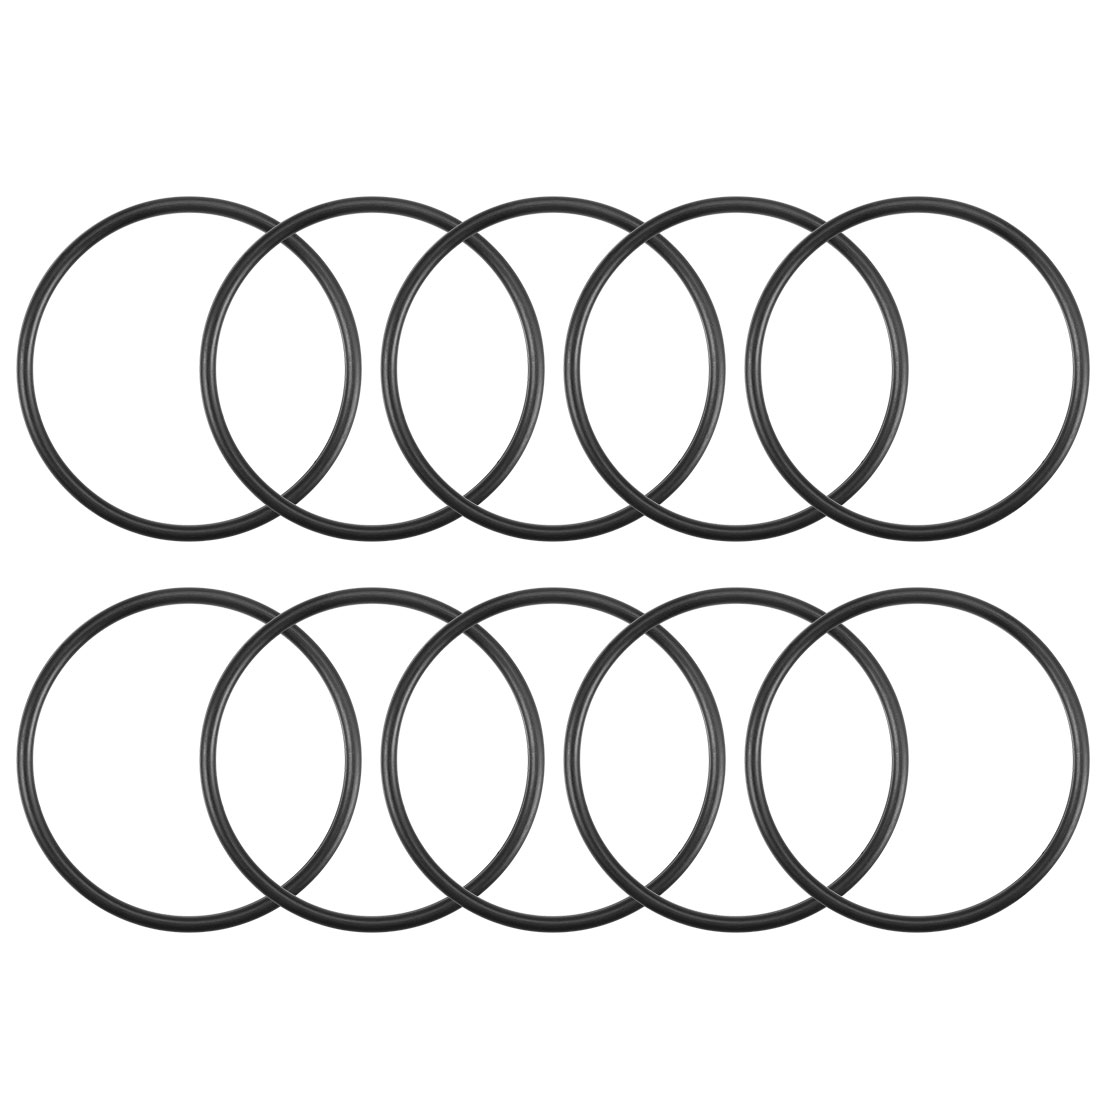 O-Rings Nitrile Rubber 32mm x 35.6mm x 1.8mm Round Seal Gasket 10Pcs